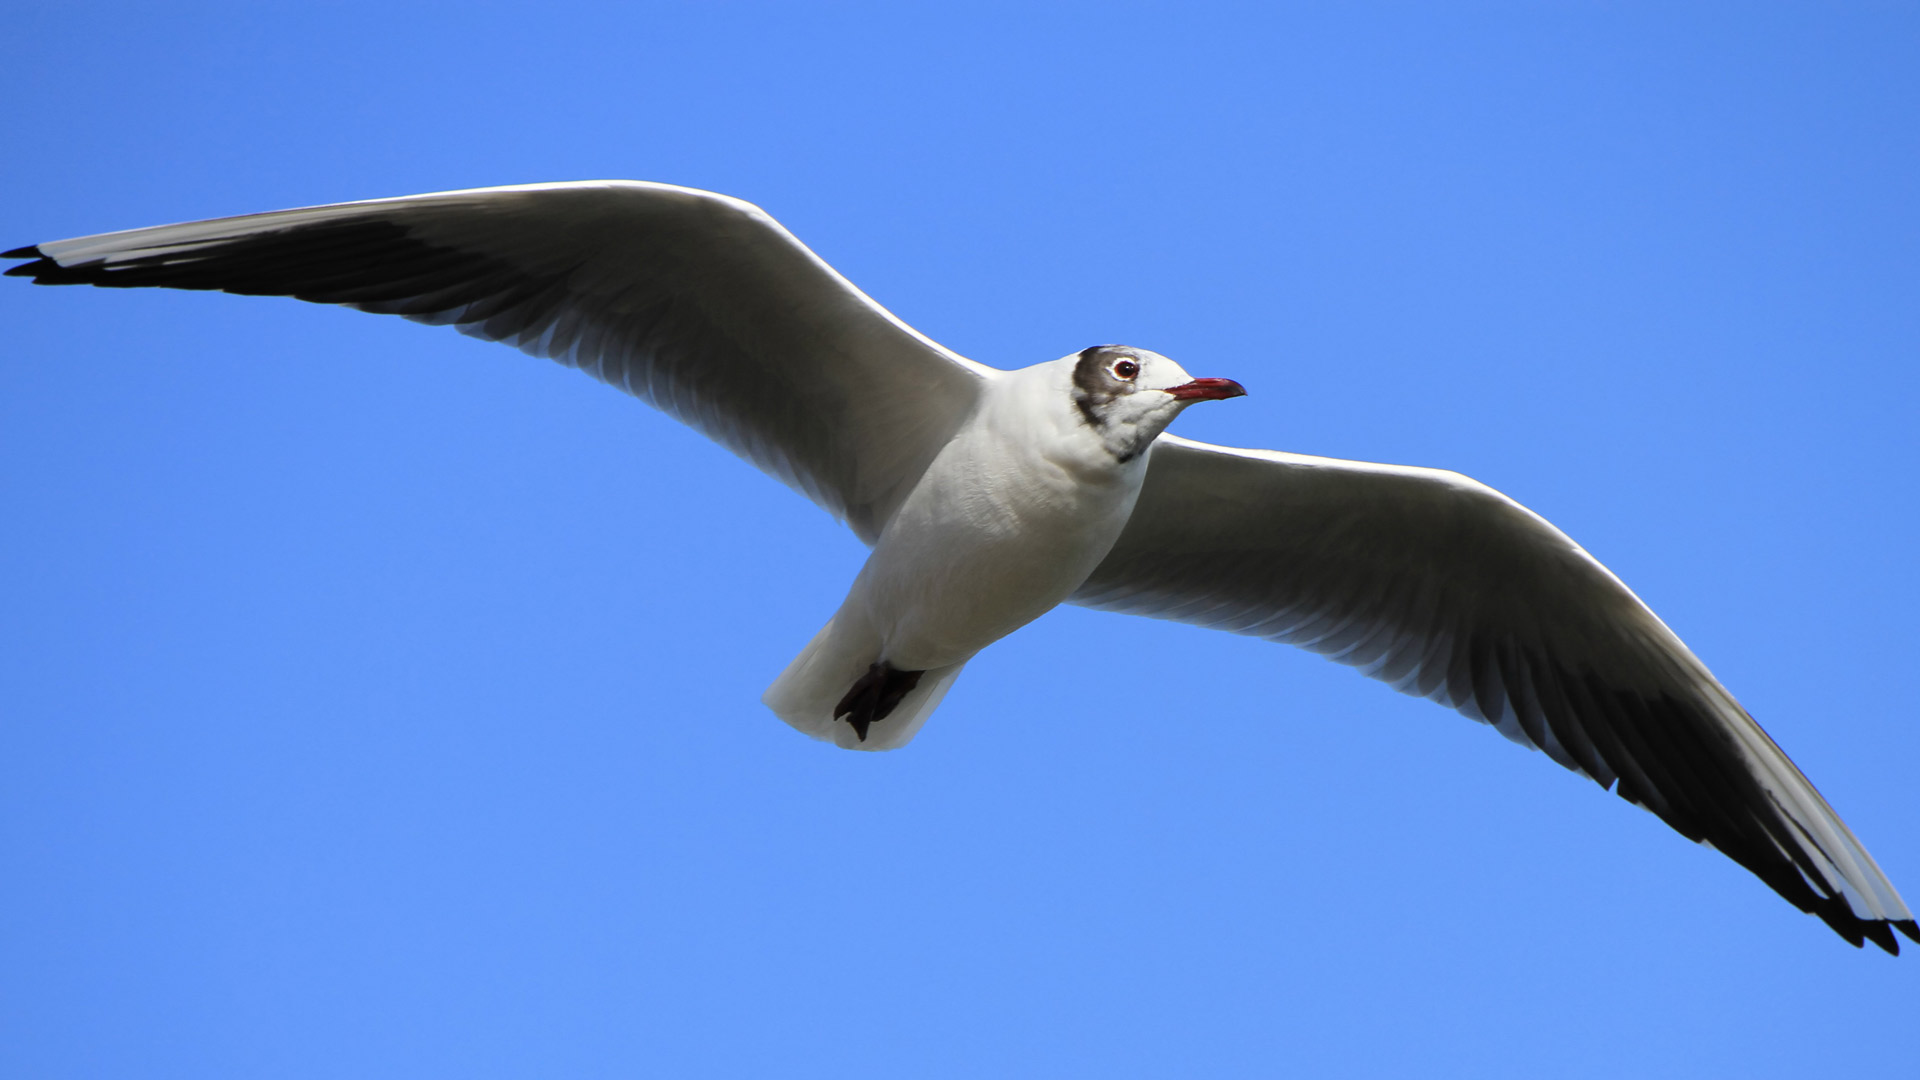 Black-headed gull with its typical winter black and white head flying in the blue sky